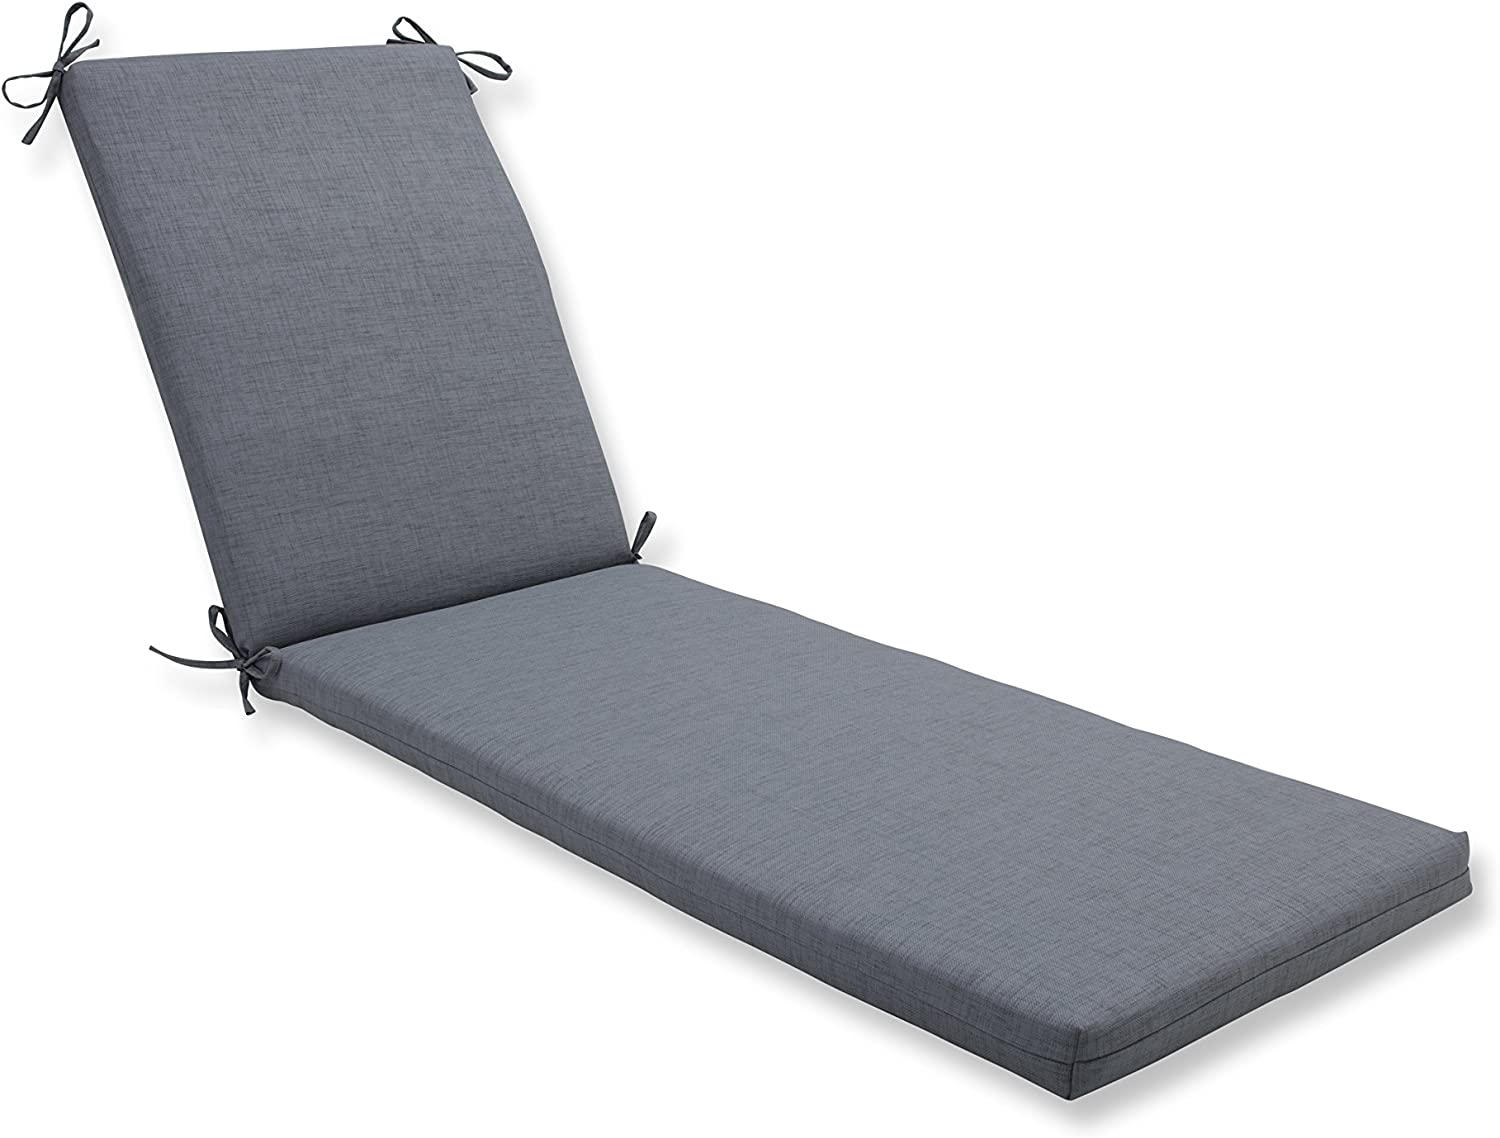 Pillow Perfect Outdoor Indoor Rave Fixed price for sale Memphis Mall Lounge Cushio Chaise Graphite